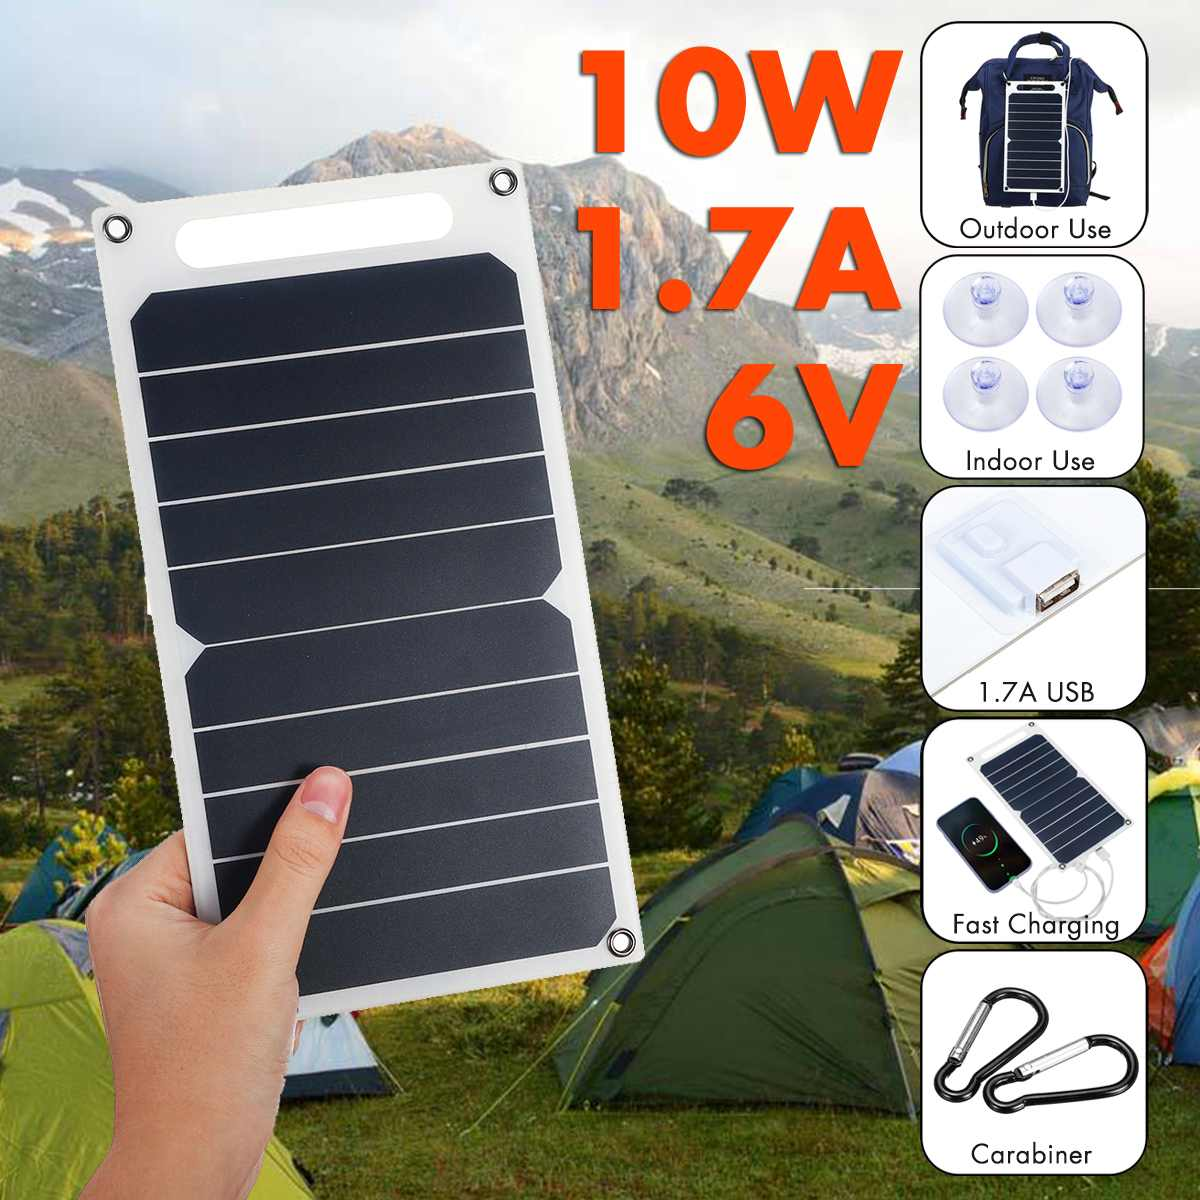 10W 6V Solar Panel Portable Sunpower Solar Cells USB Mobile Phone Photovoltaic Charging Power Bank With Suckers and Carabiner